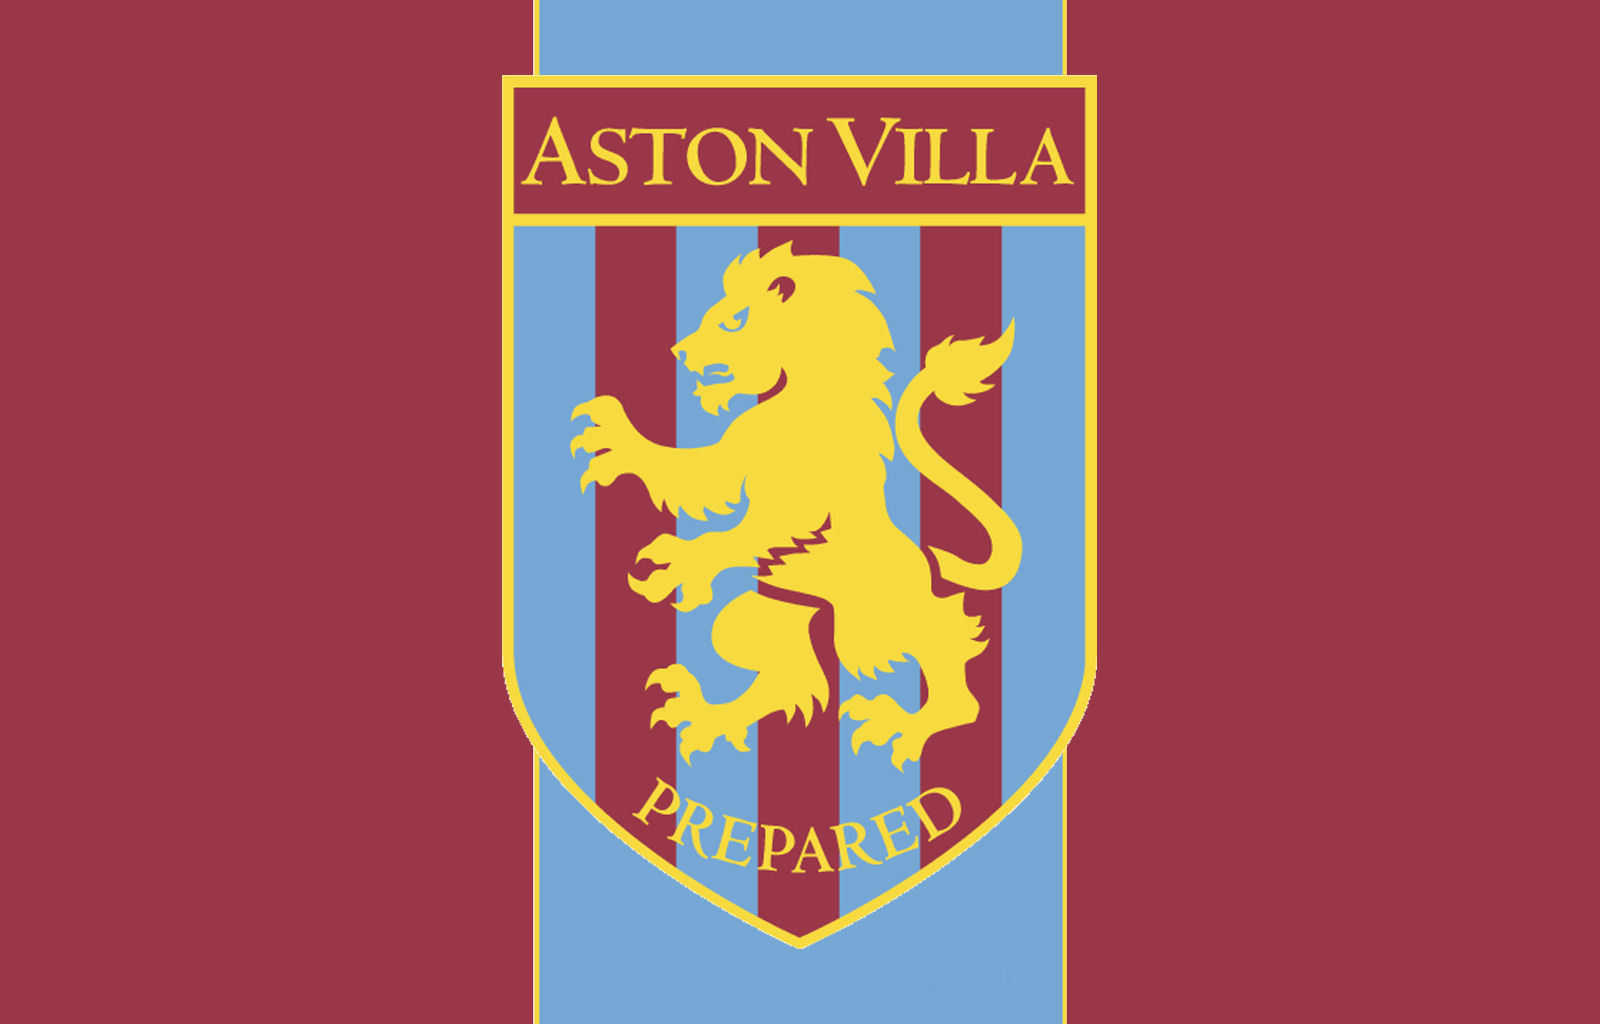 aston villa - photo #22